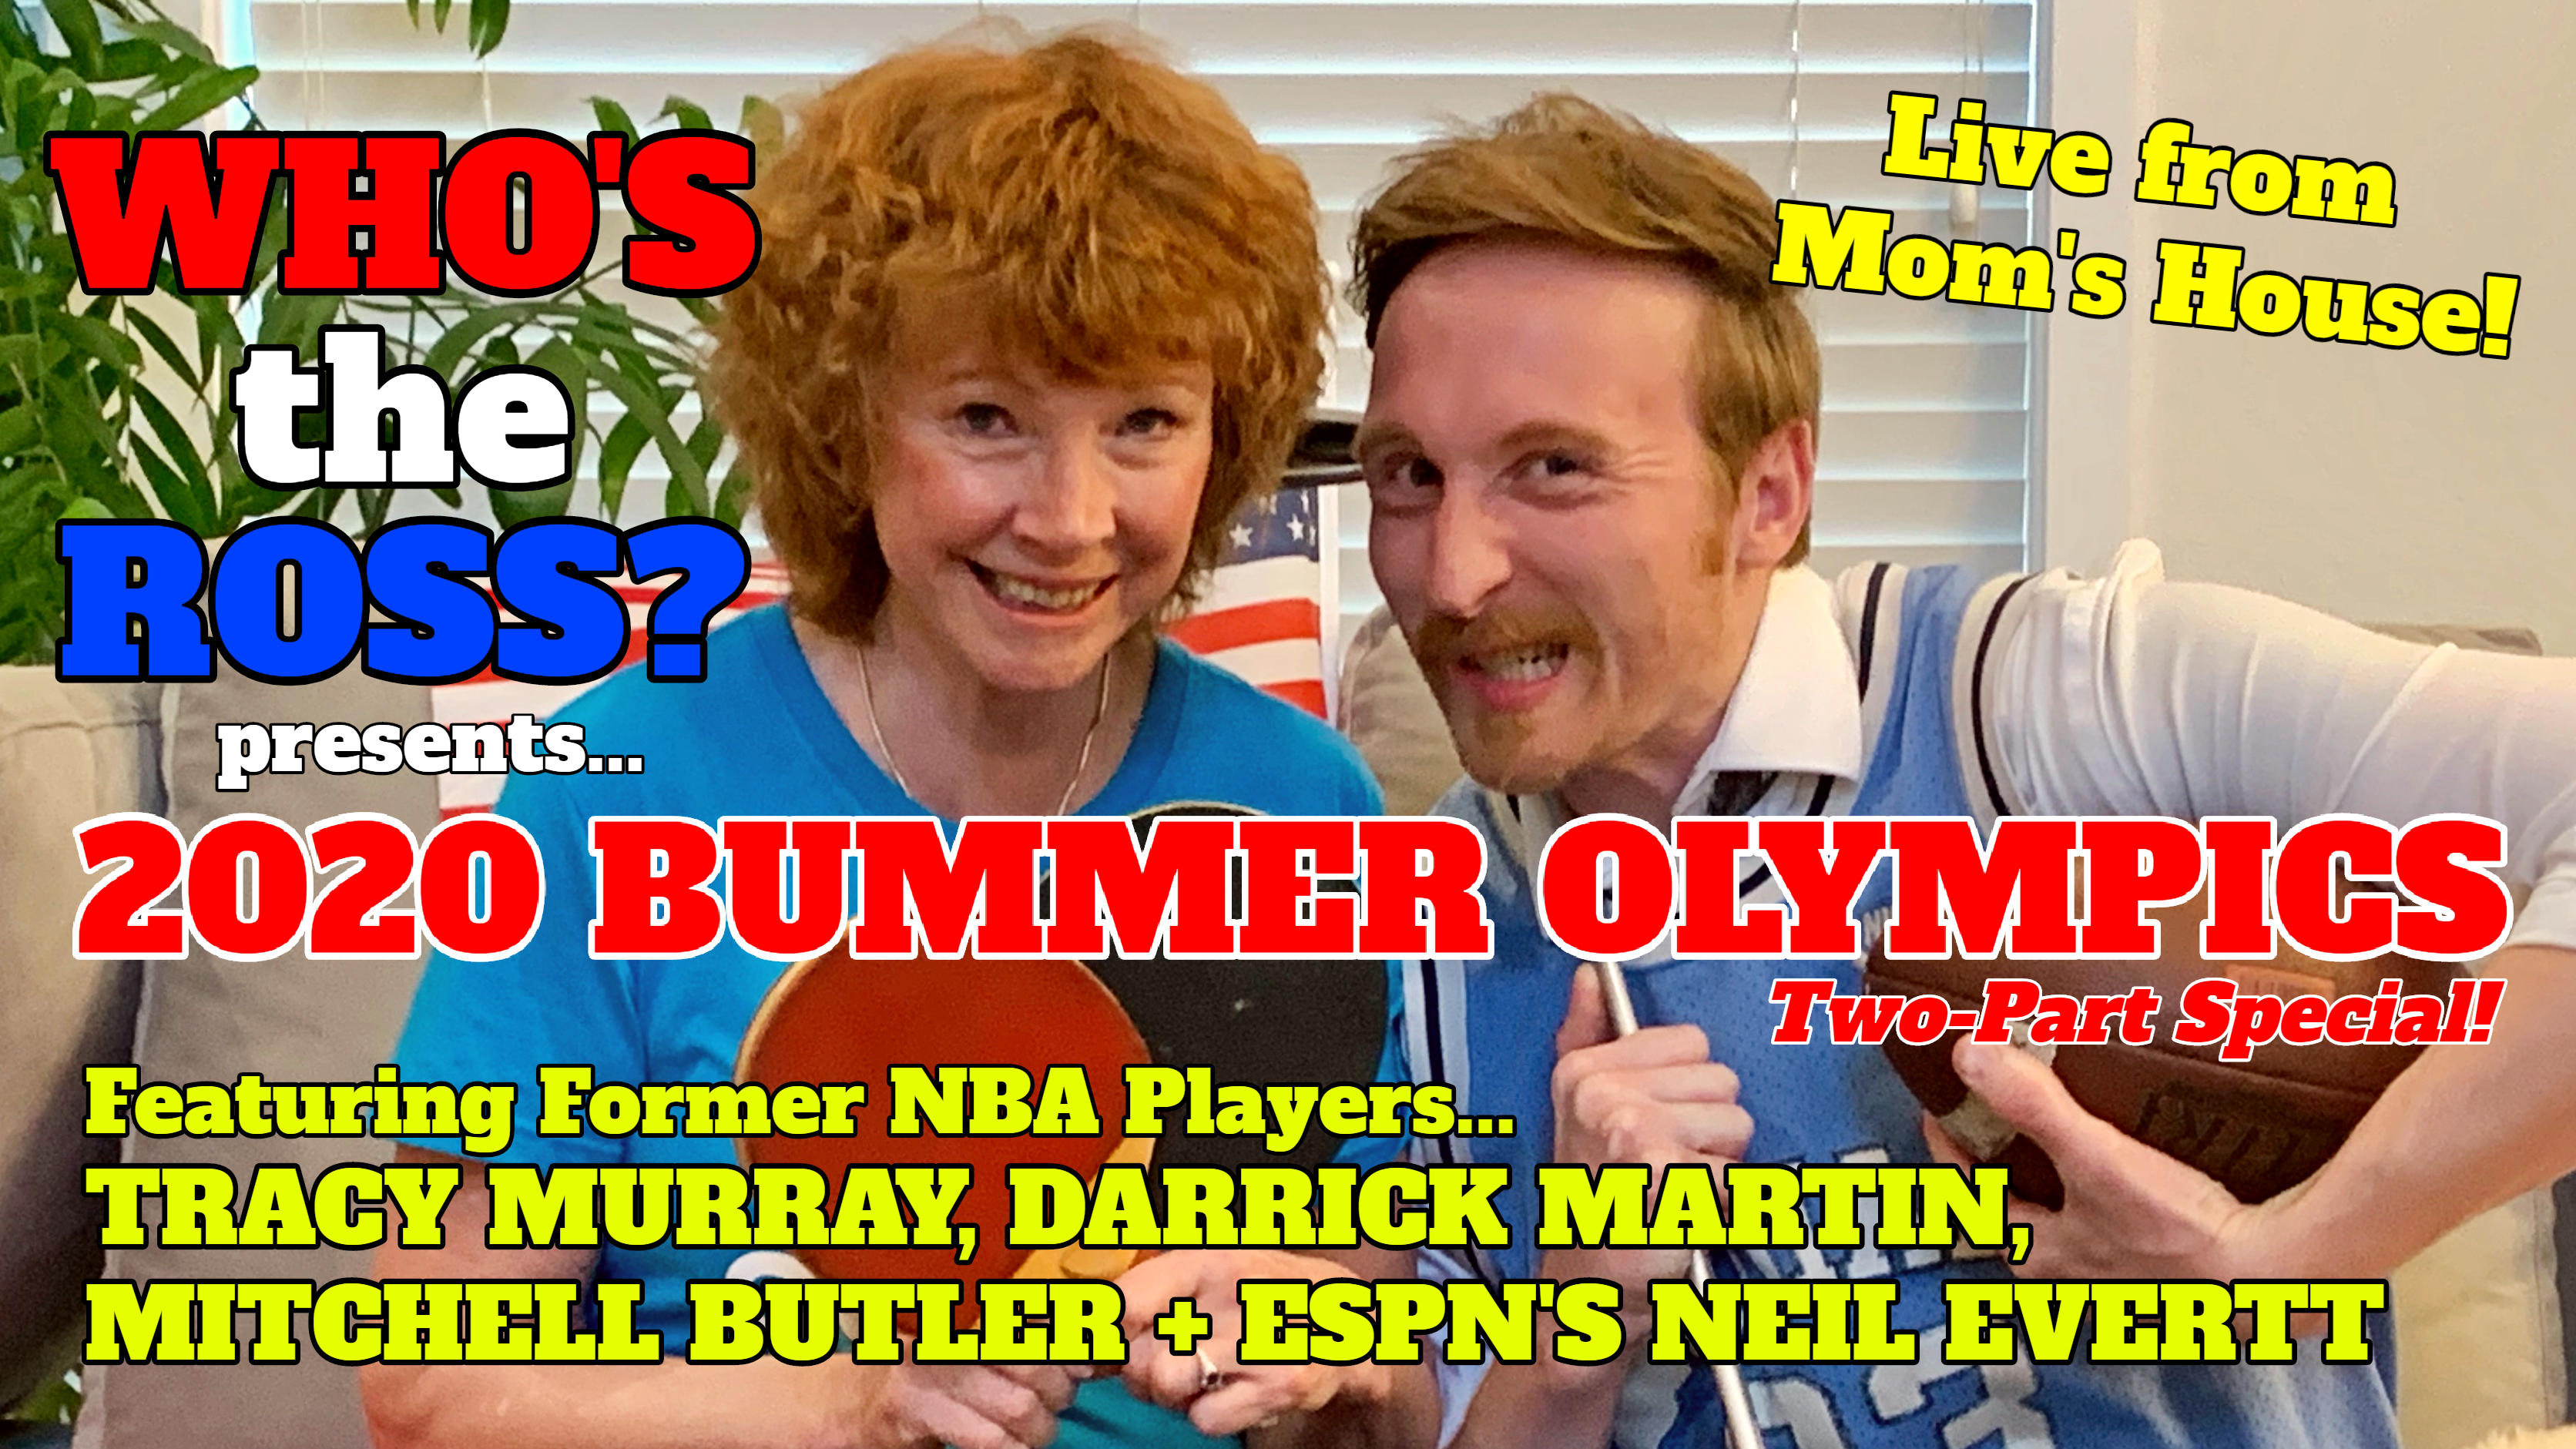 """Bummer Olympics"" olympics 2020 sports NBA players former Darrick Martin Mitchell Butler Tracy Murray Neil Everett ESPN anchor Michael Jordan story interview late-night talk show ""Who's the Ross?"" quarantine pandemic Aaron Ross Aleta Mom Son Portland PDX Oregon LA Los Angeles host best humor funny comedy comedian game ""game show"" ""late-night talk show"" ""from home"" podcast basketball professional zoom"